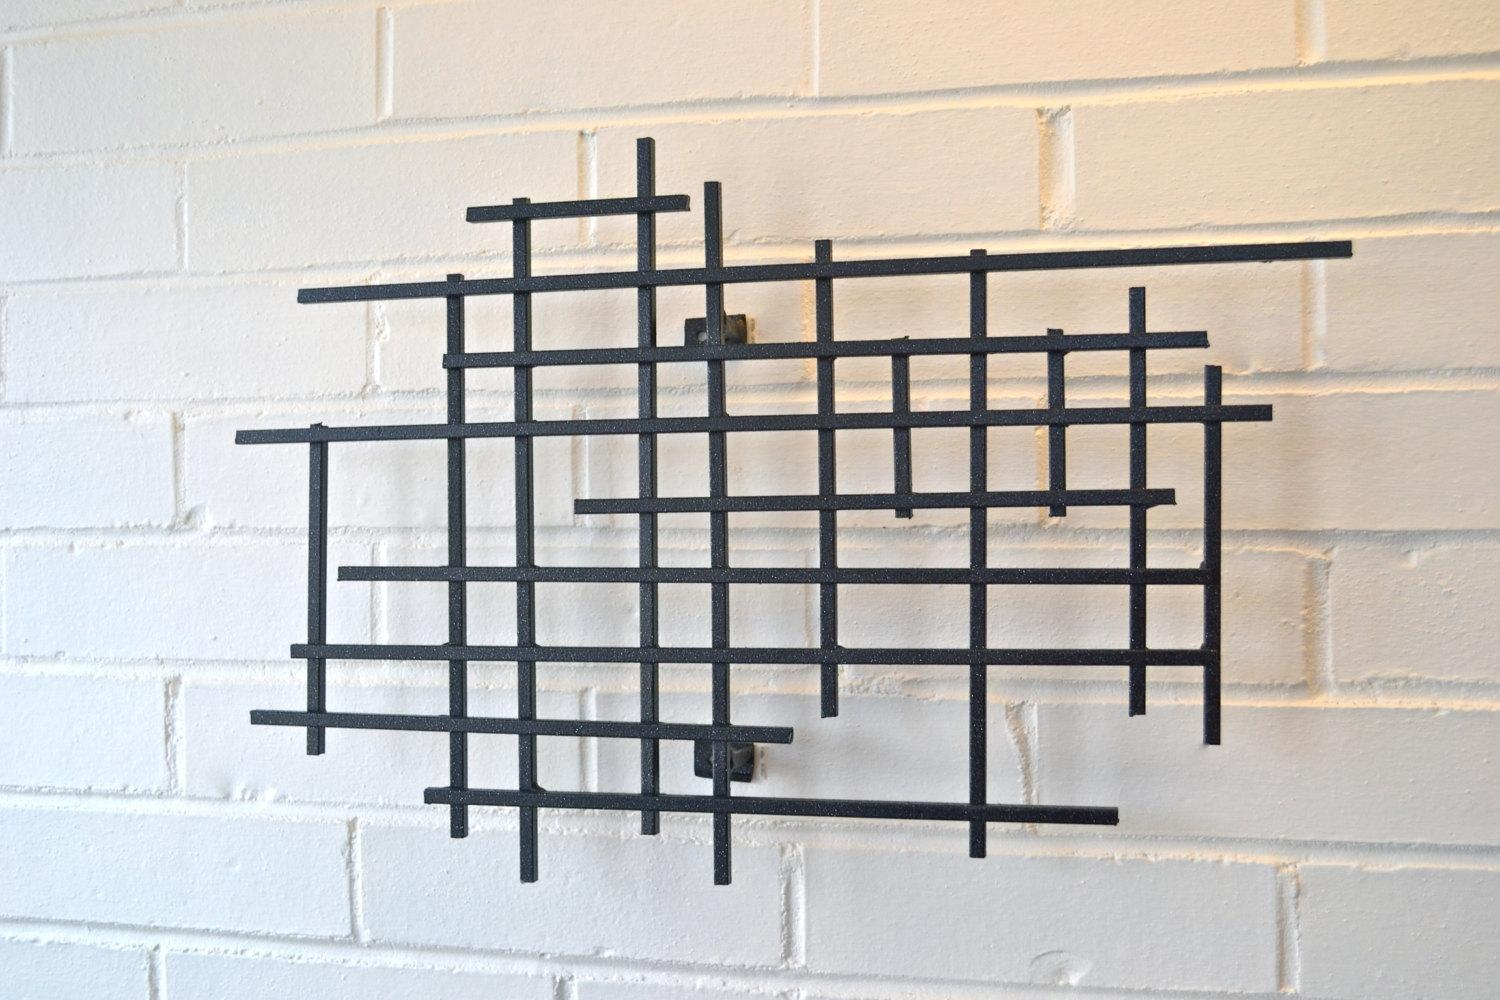 Small Square Metal Art Sculpture Modern Steel Decor Decoration 3D Intended For 3D Metal Wall Art (Image 14 of 20)